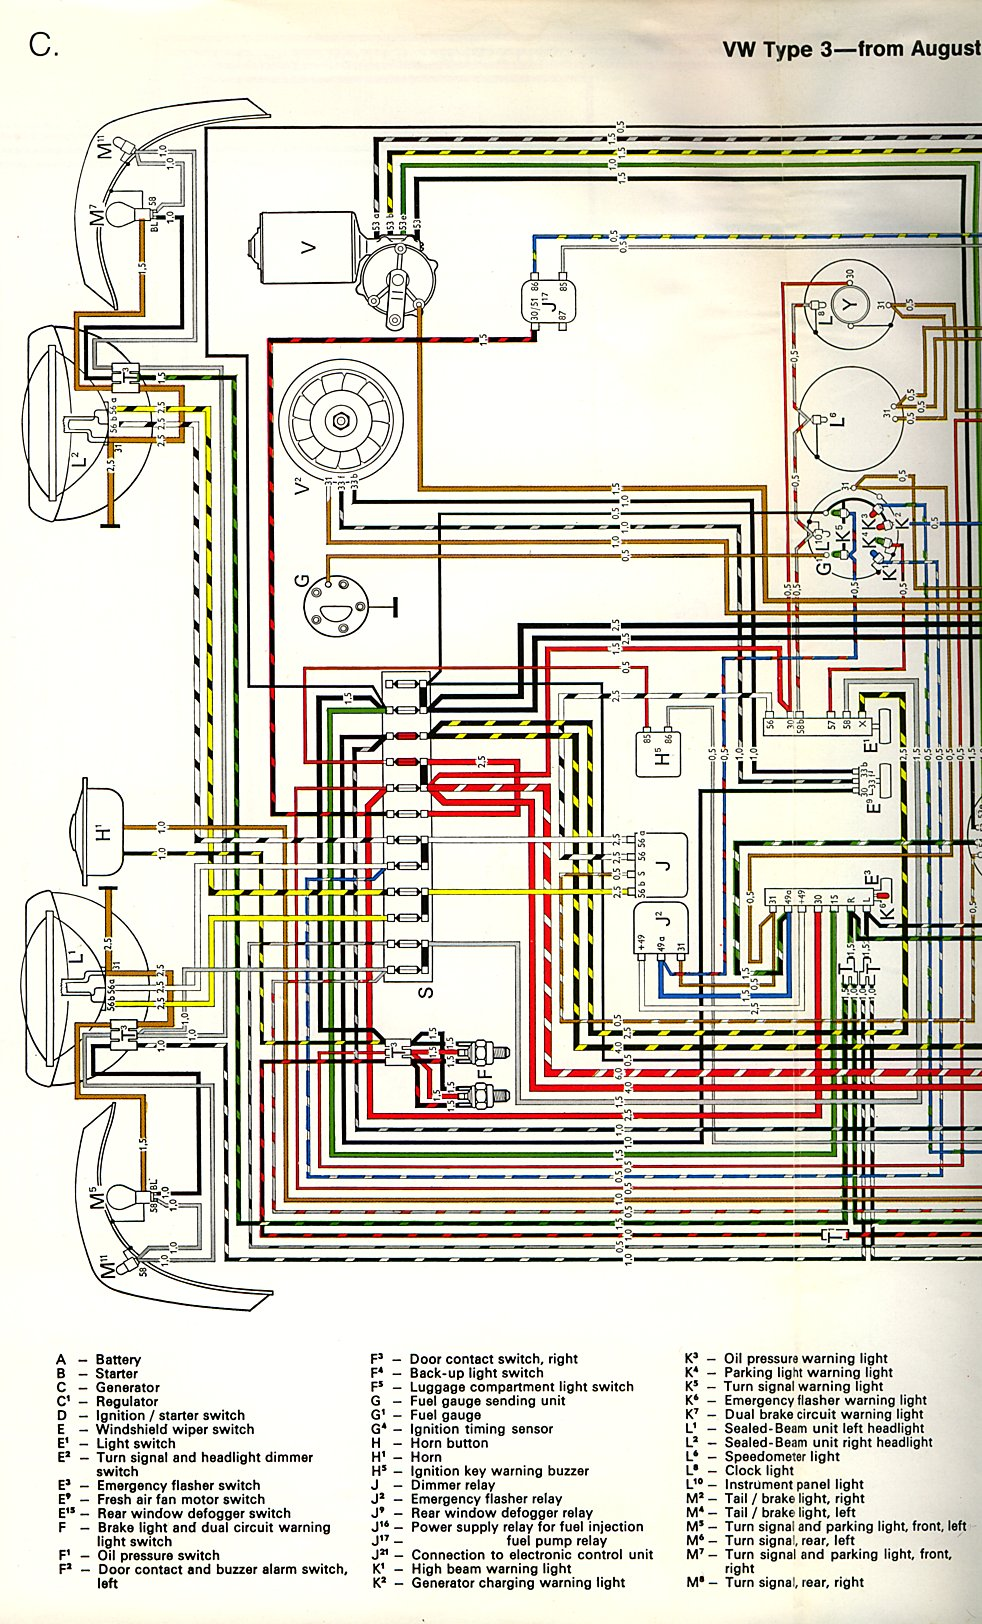 thesamba com type 3 wiring diagrams vw wiring harness diagram vw type 3 wiring diagram #7